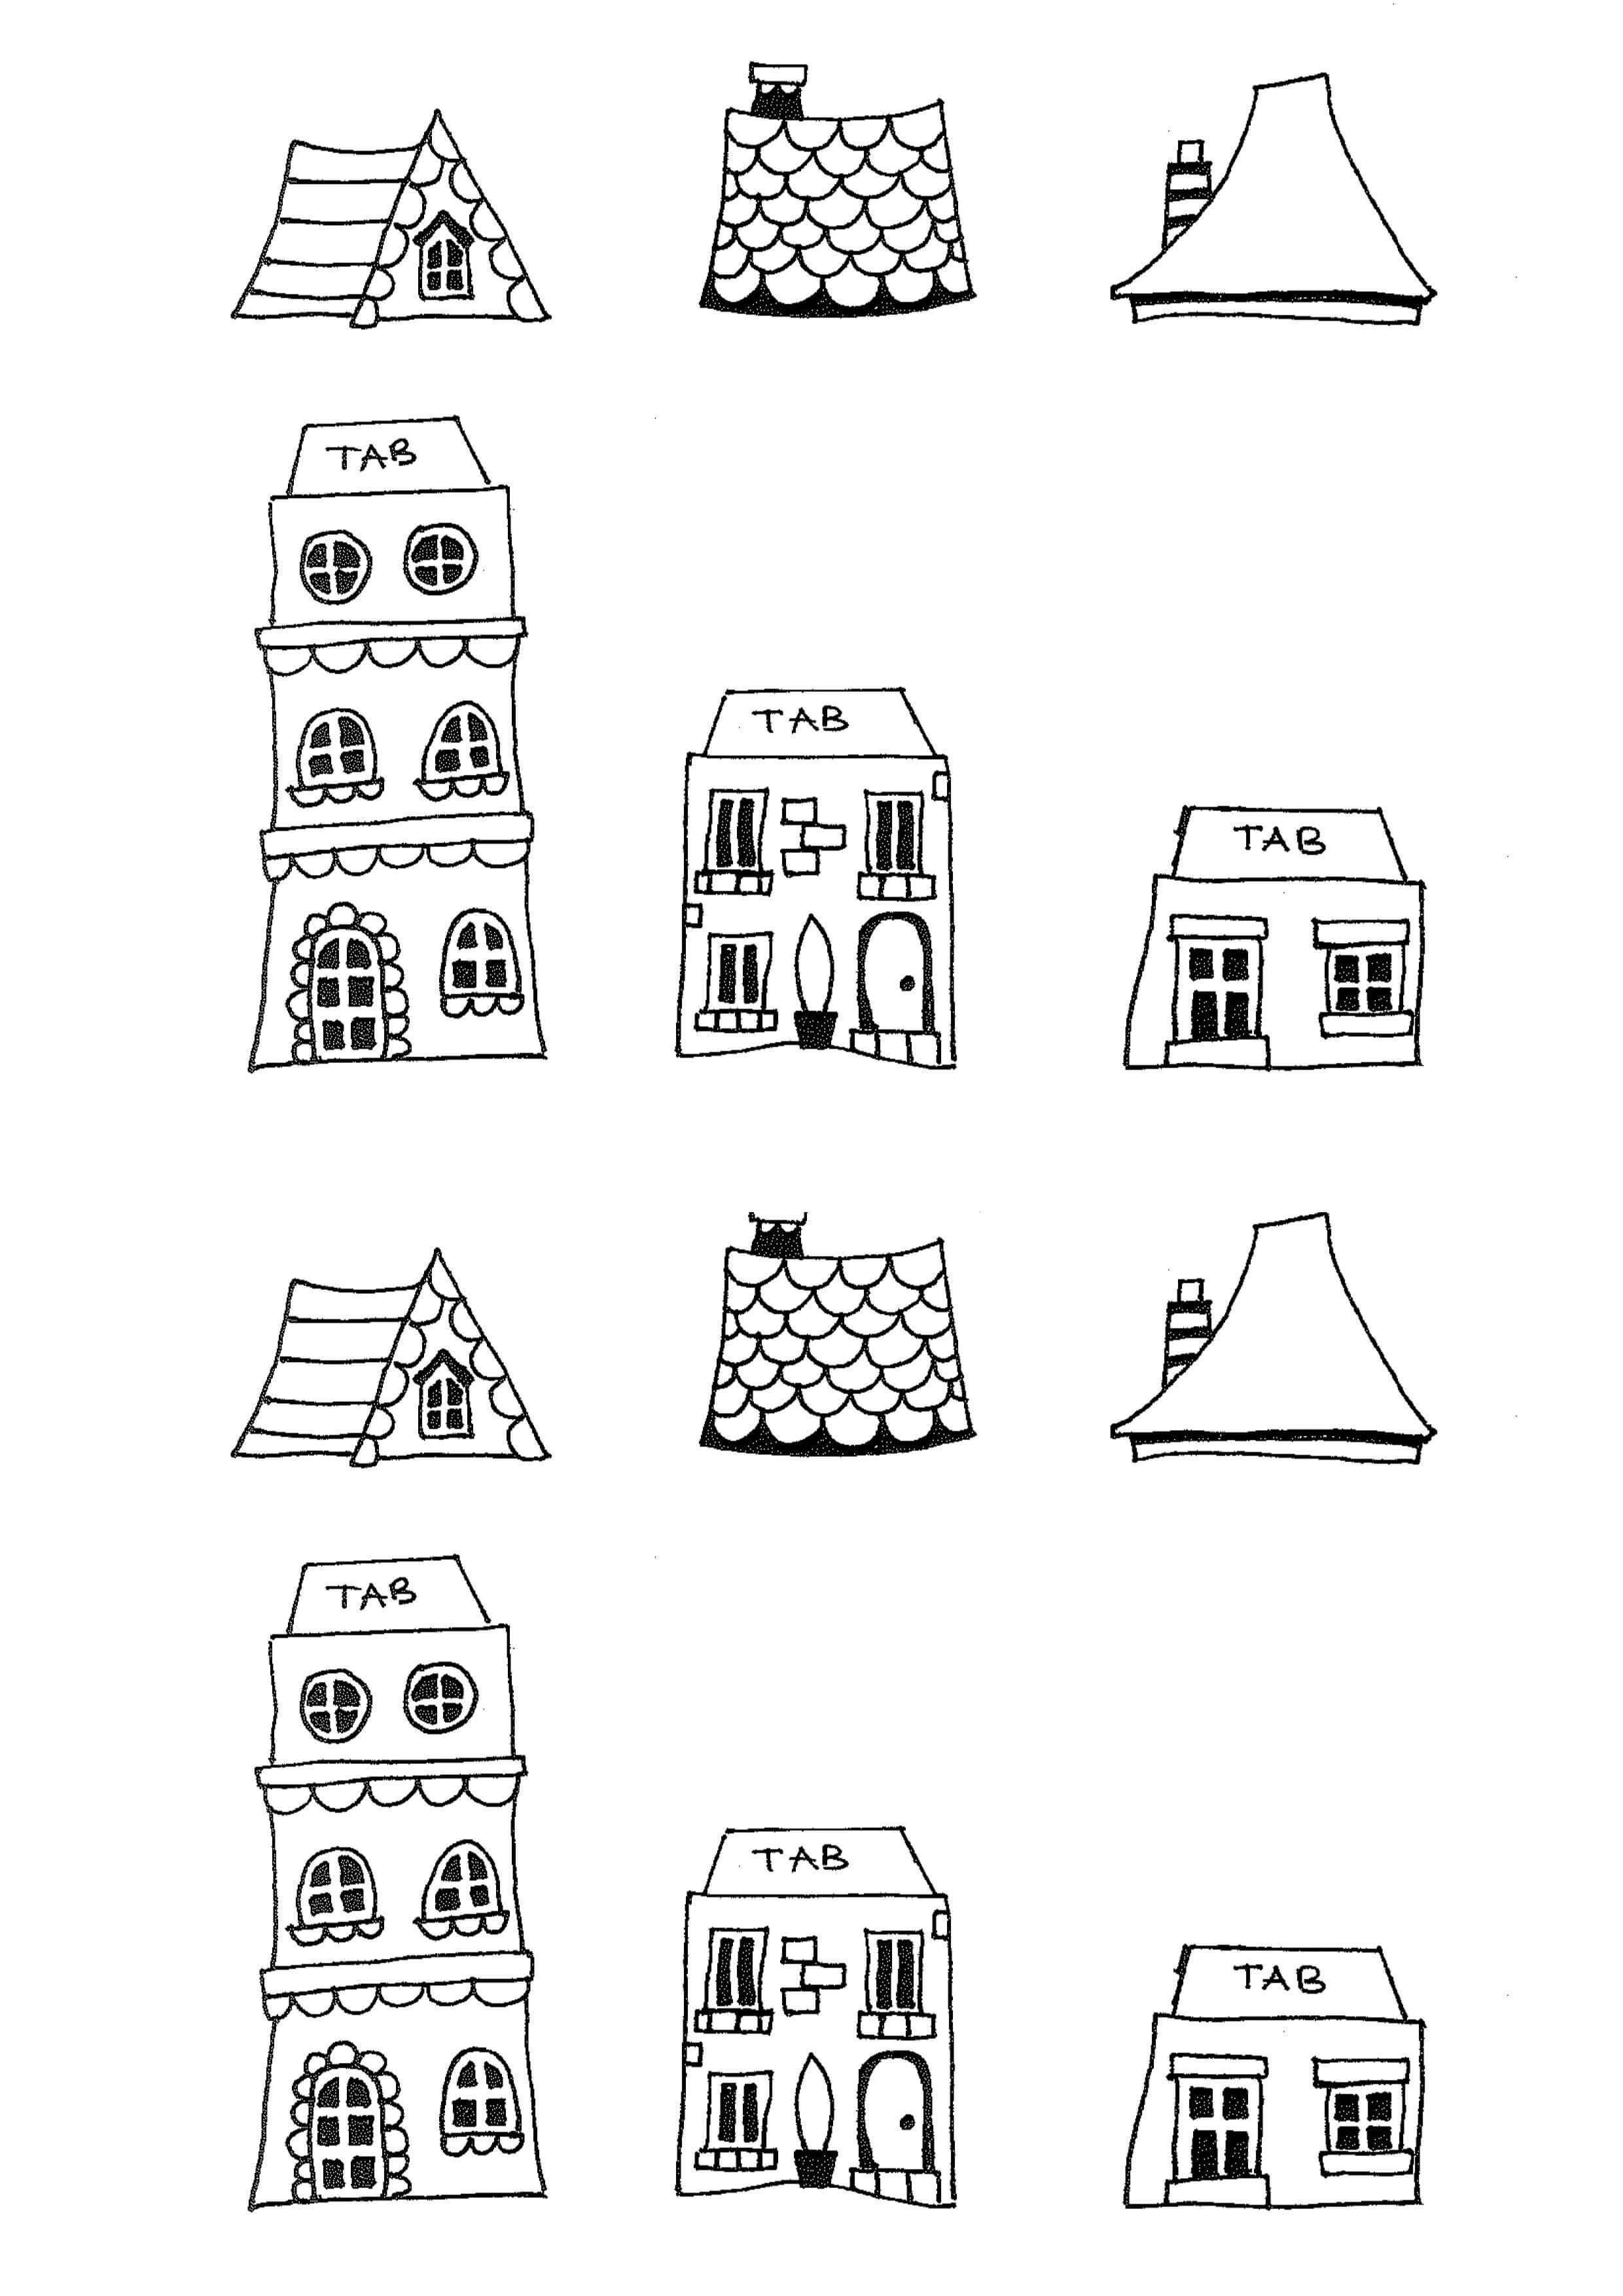 Free Printable House Templates | Printables | New Home Cards within Free Moving House Cards Templates